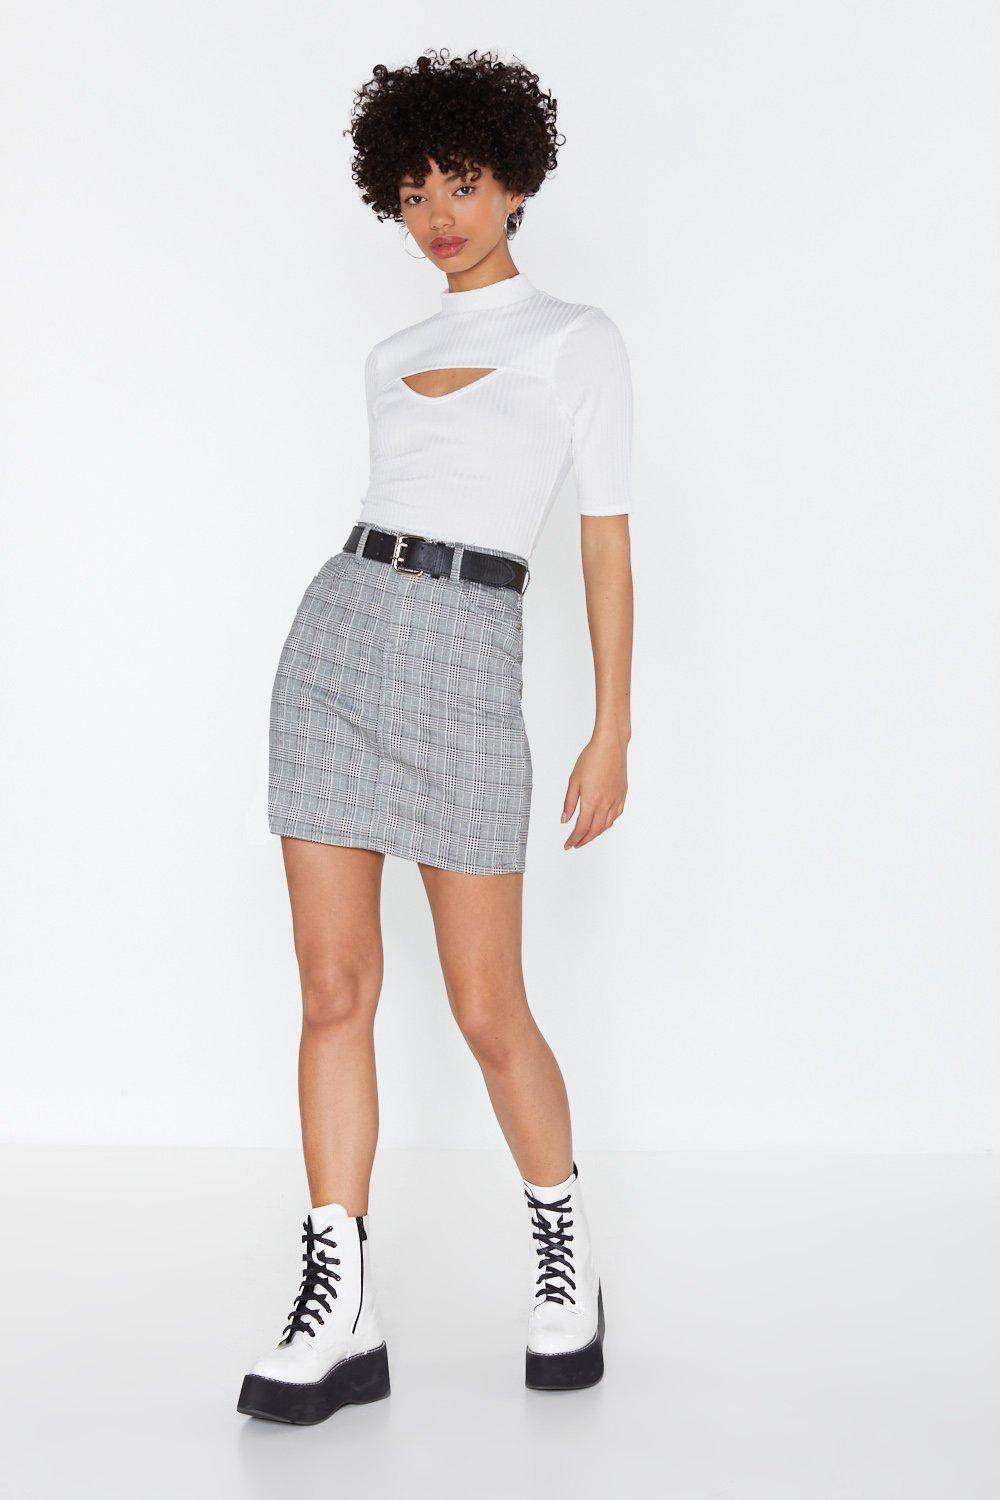 a09522b1463bdb Mini-jupe taille haute Check On It   Shop Clothes at Nasty Gal!